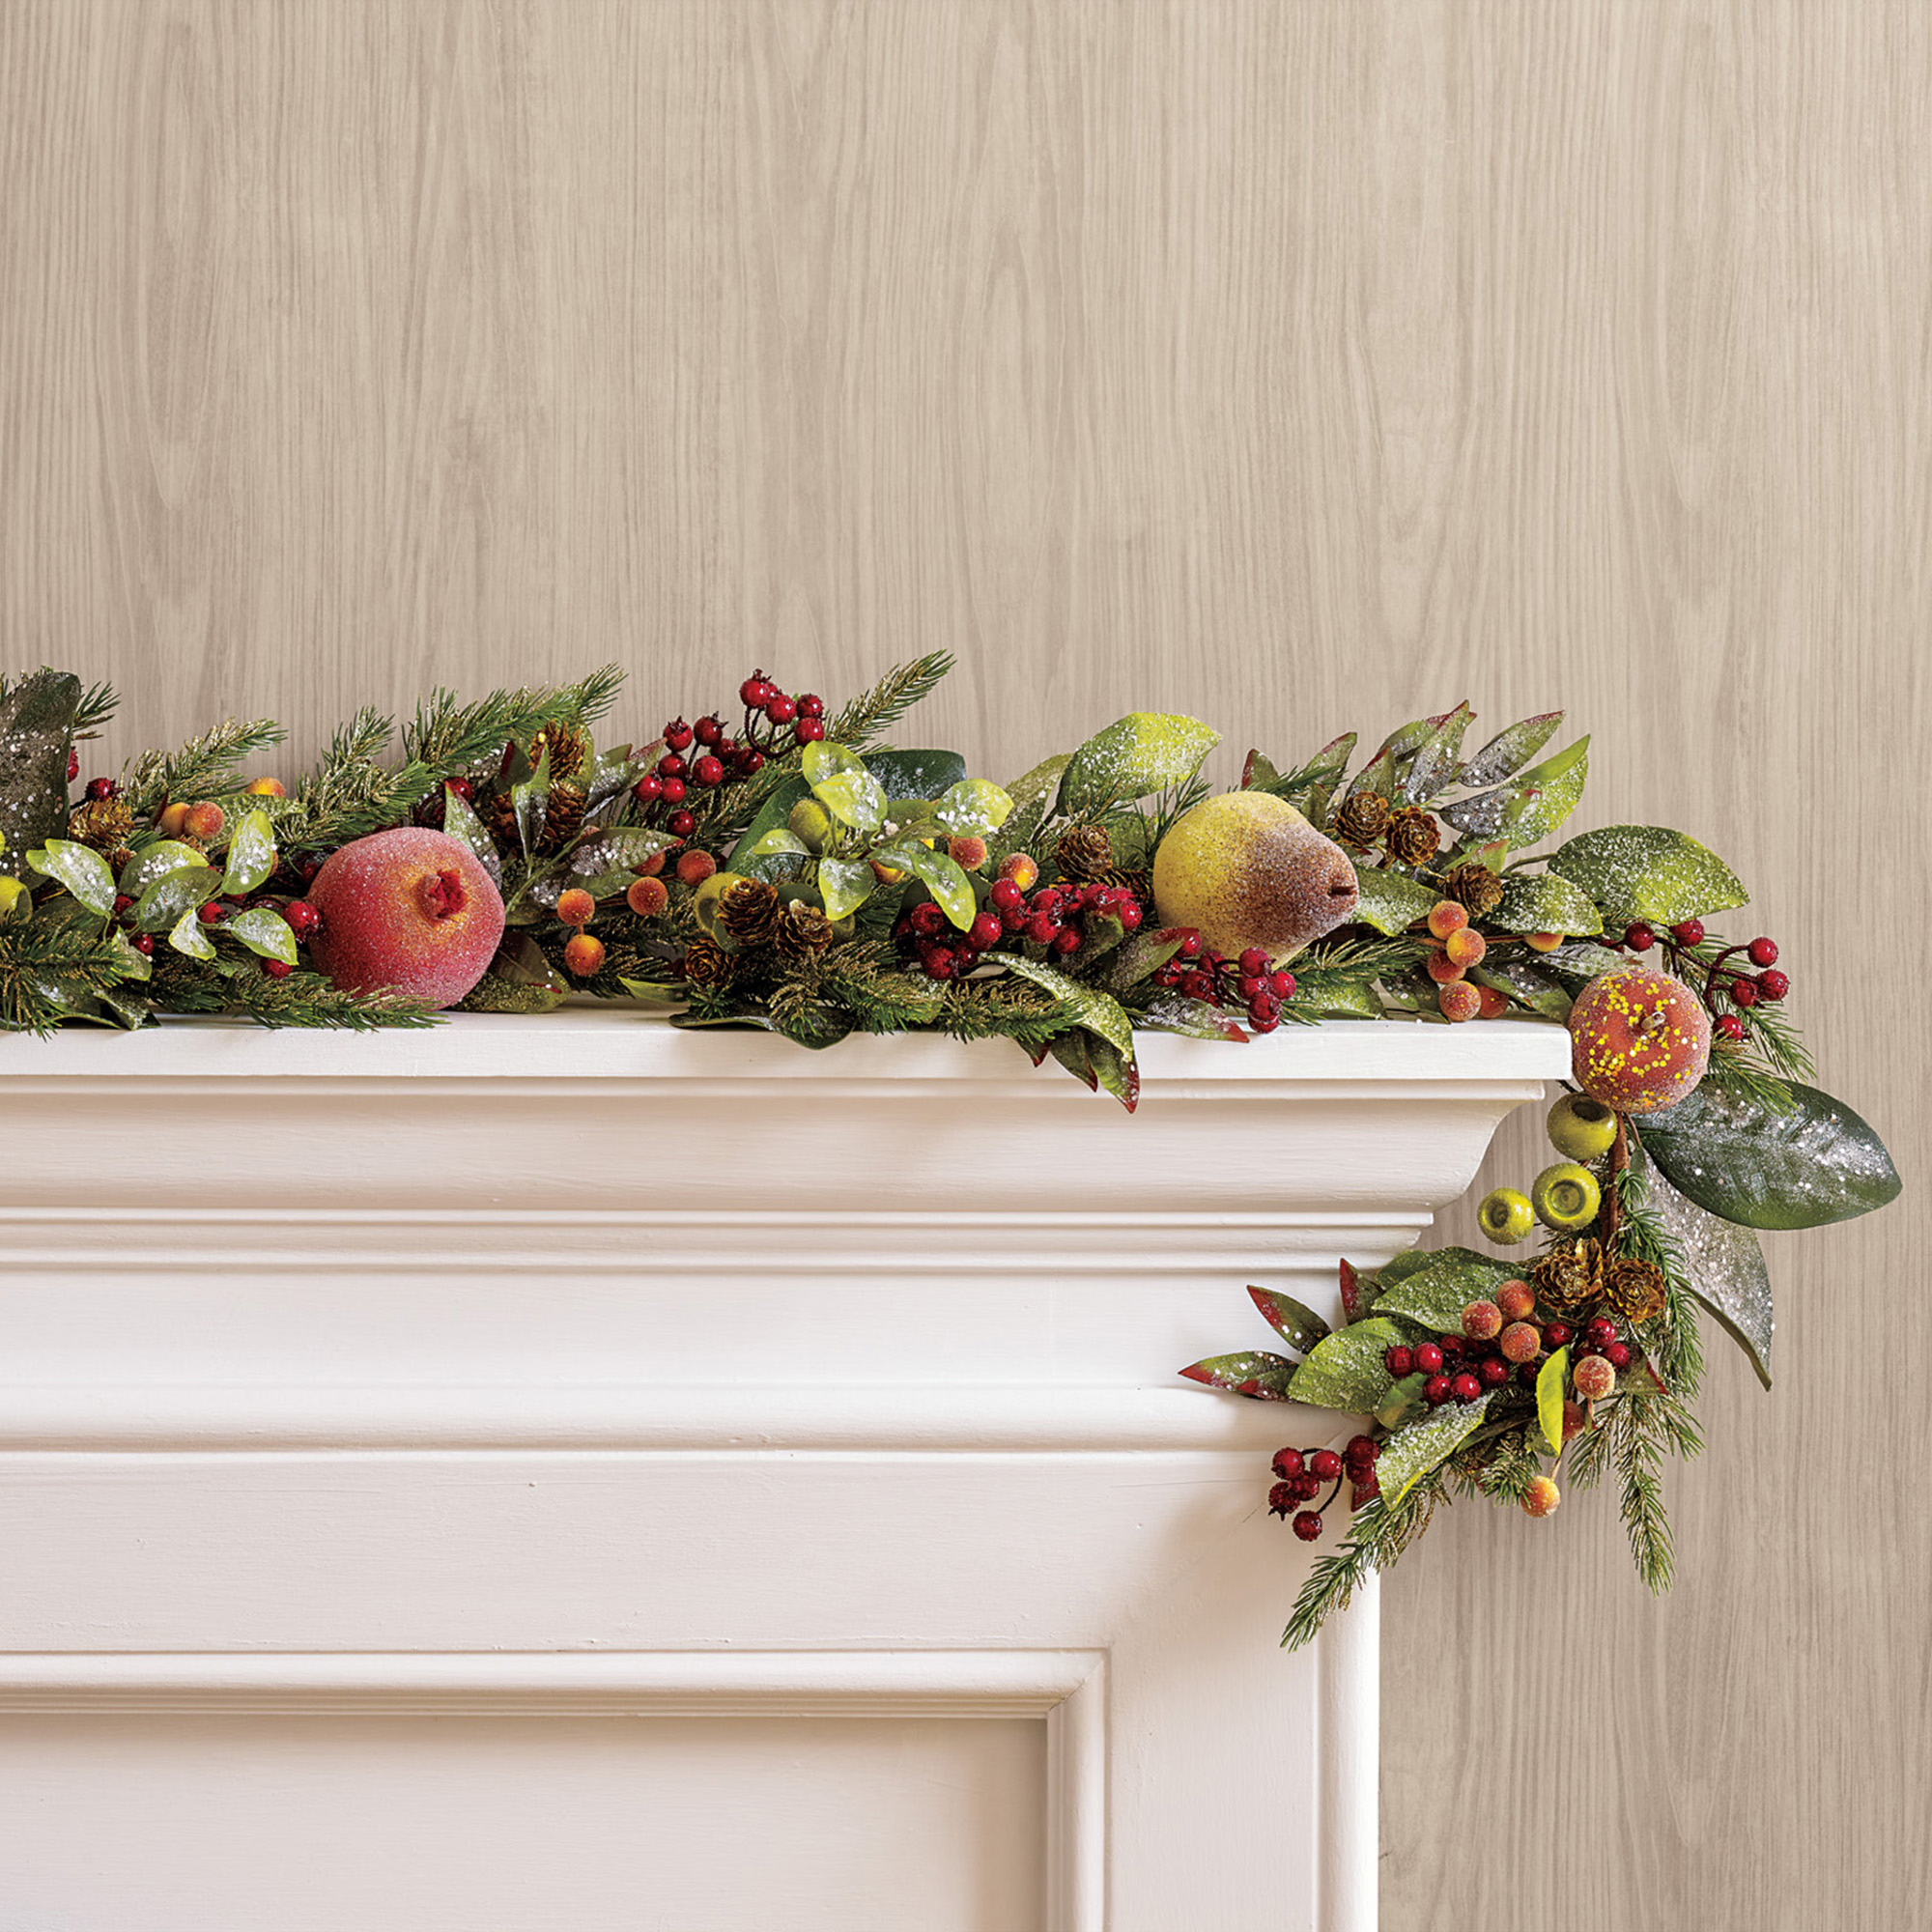 Jeweled Sugared Fruit Garland